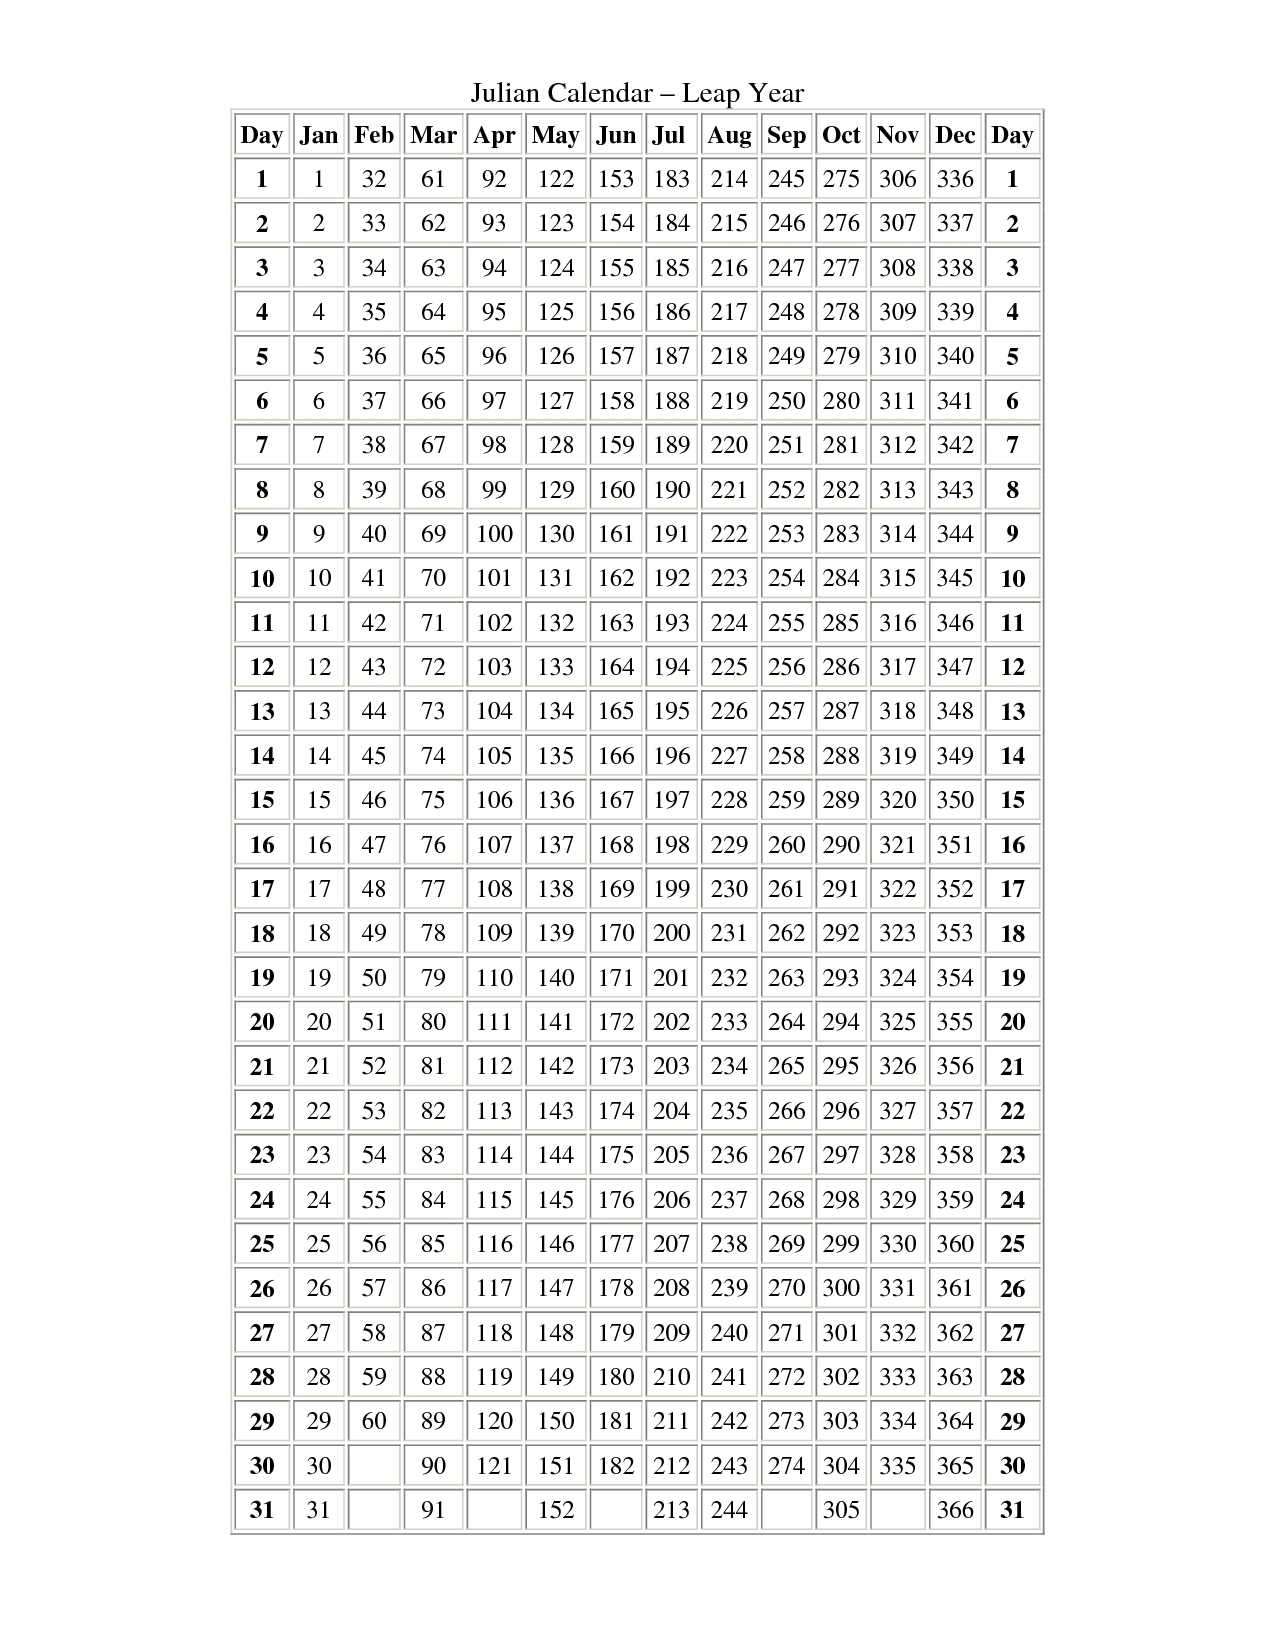 Non Leap Year Julian Calendar | Example Calendar Printable in Non Leap Year Calendar